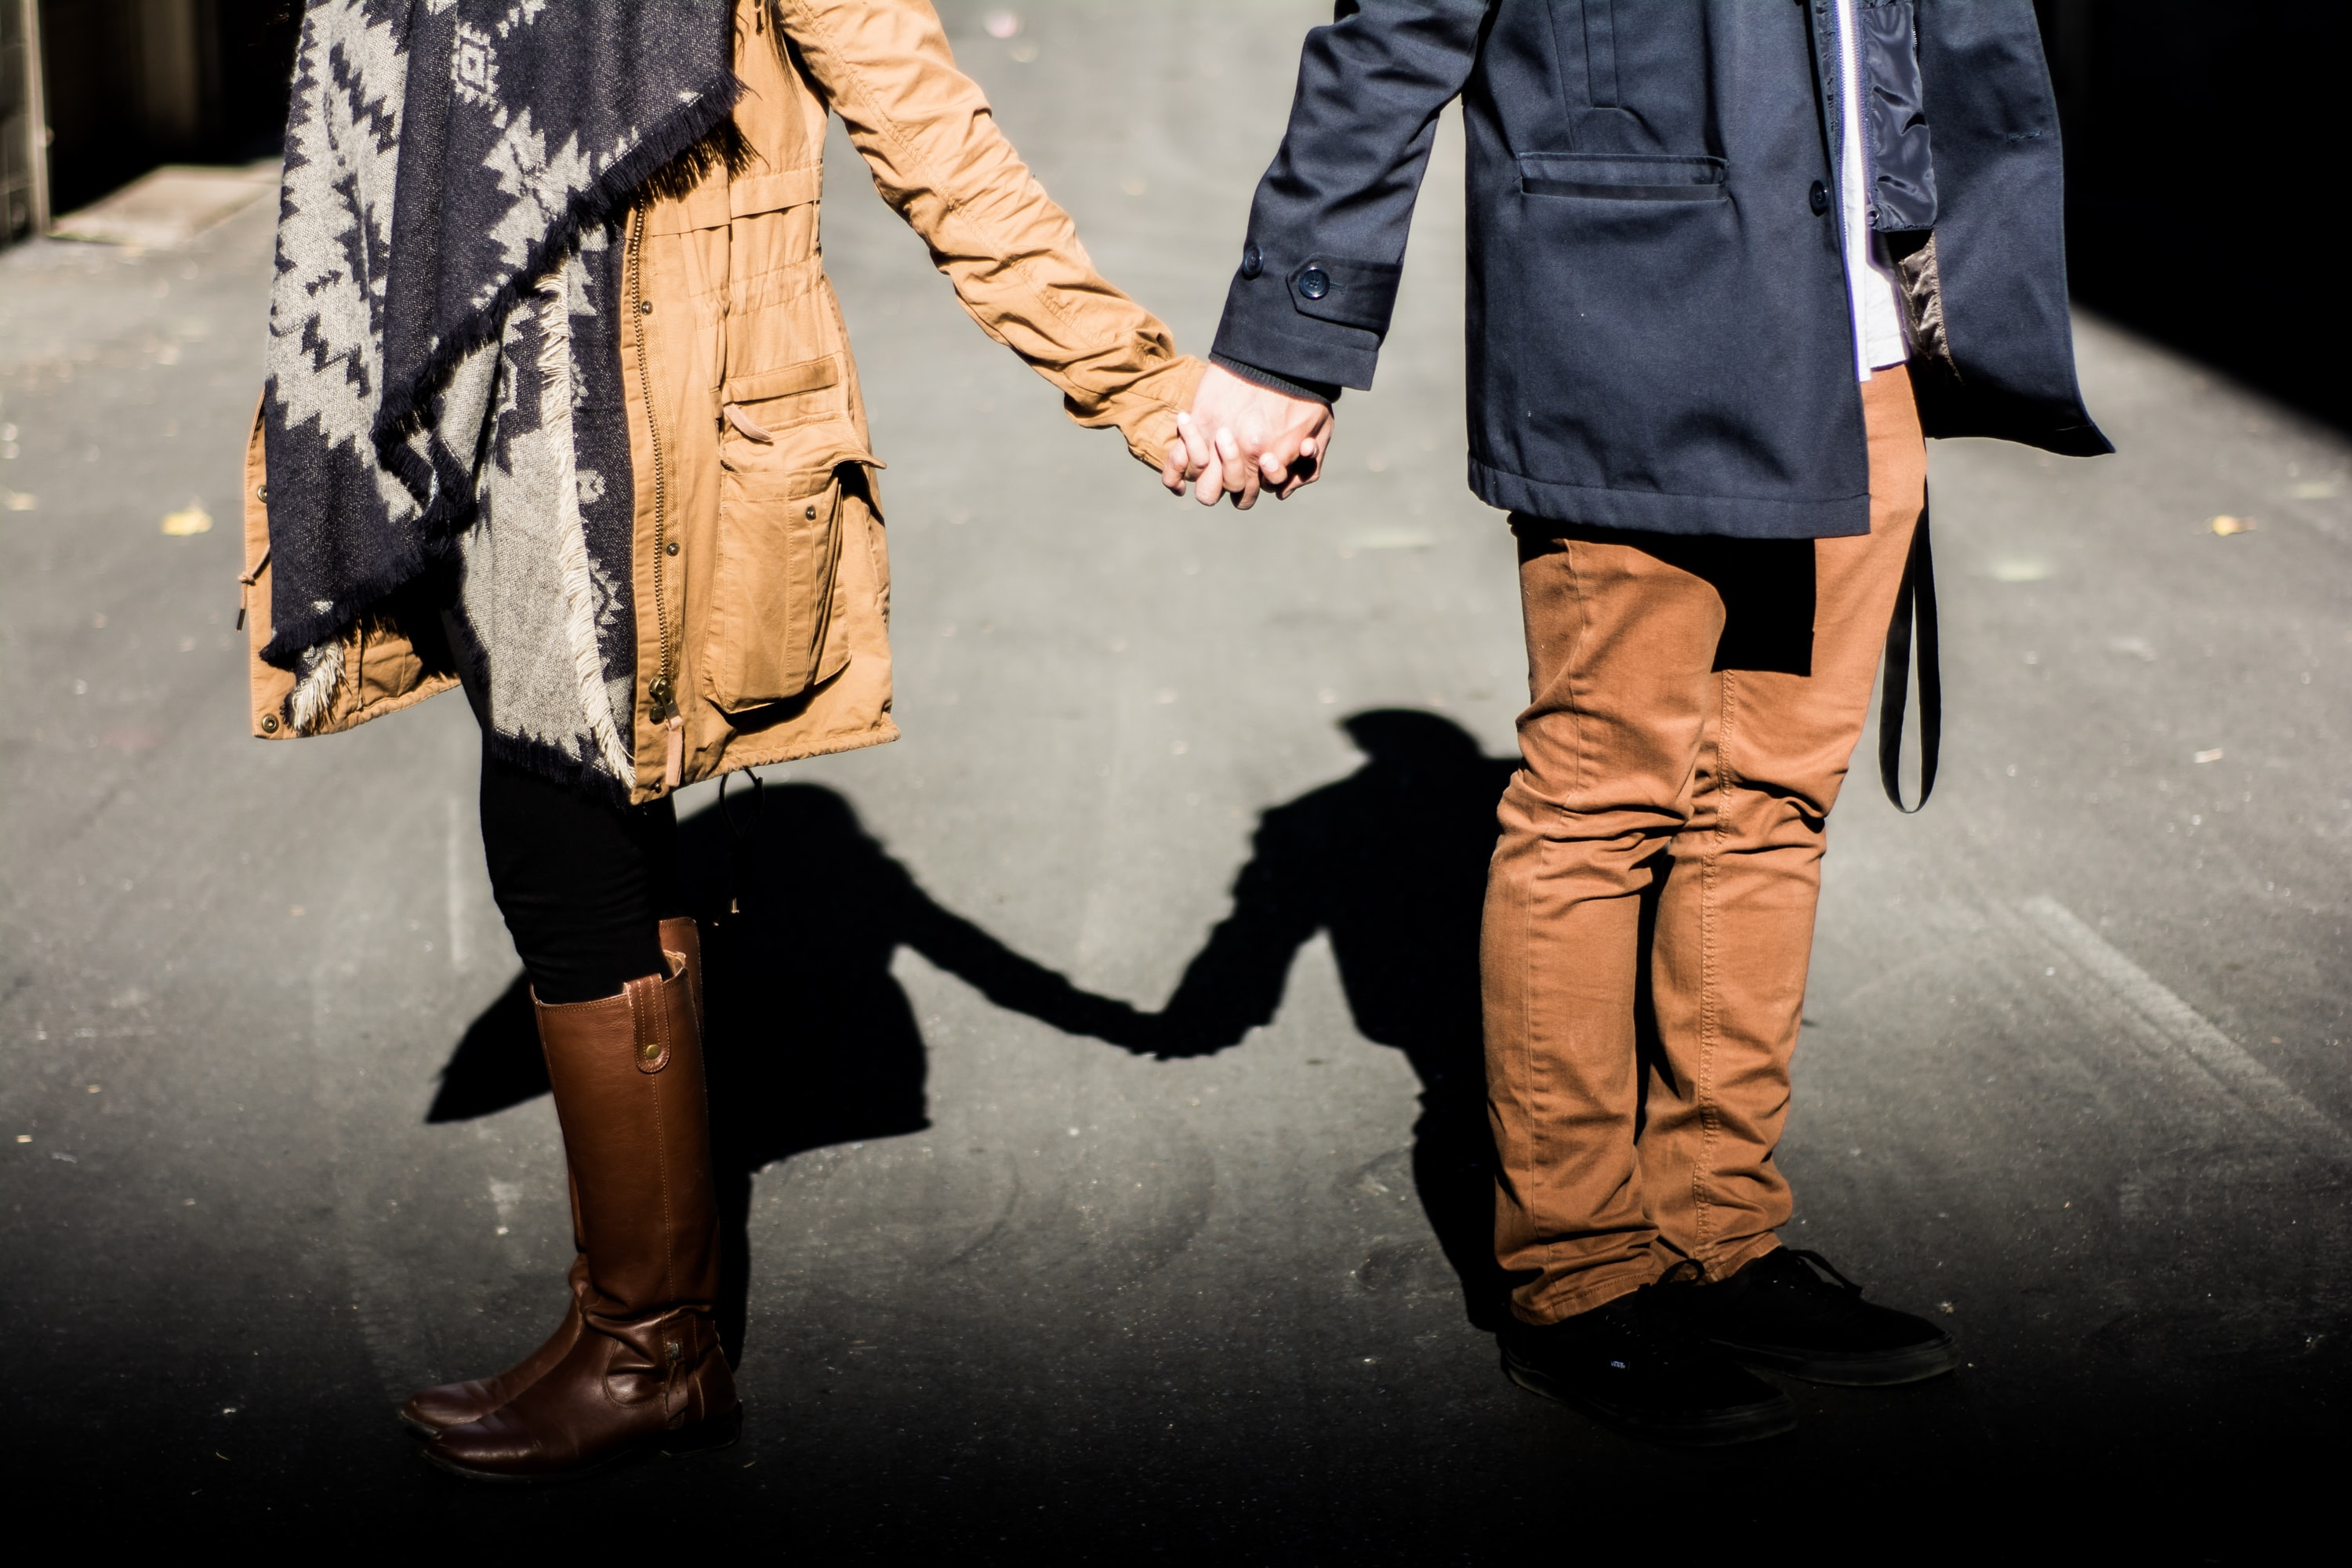 A couple in casual fall clothing holds hands in Edmonton, their shadow visible behind them